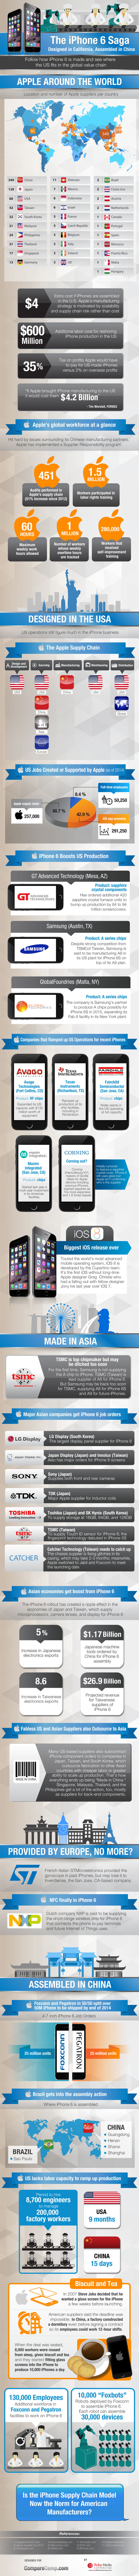 where are iphones made